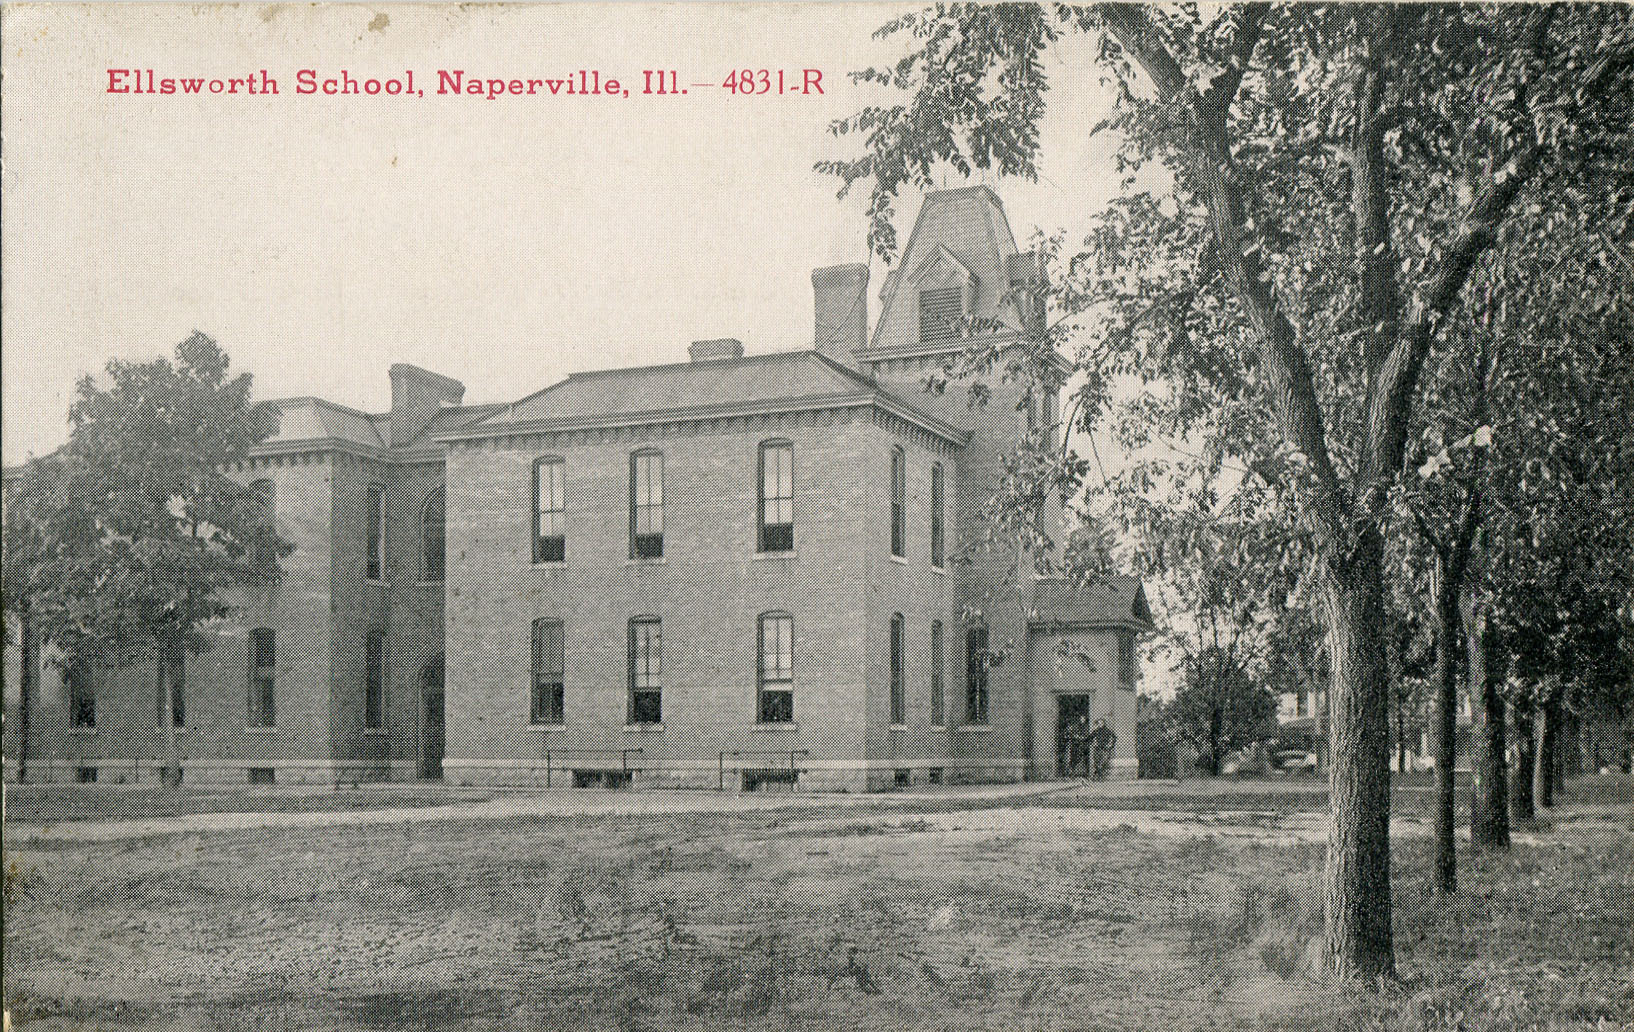 Ellsworth School postcard